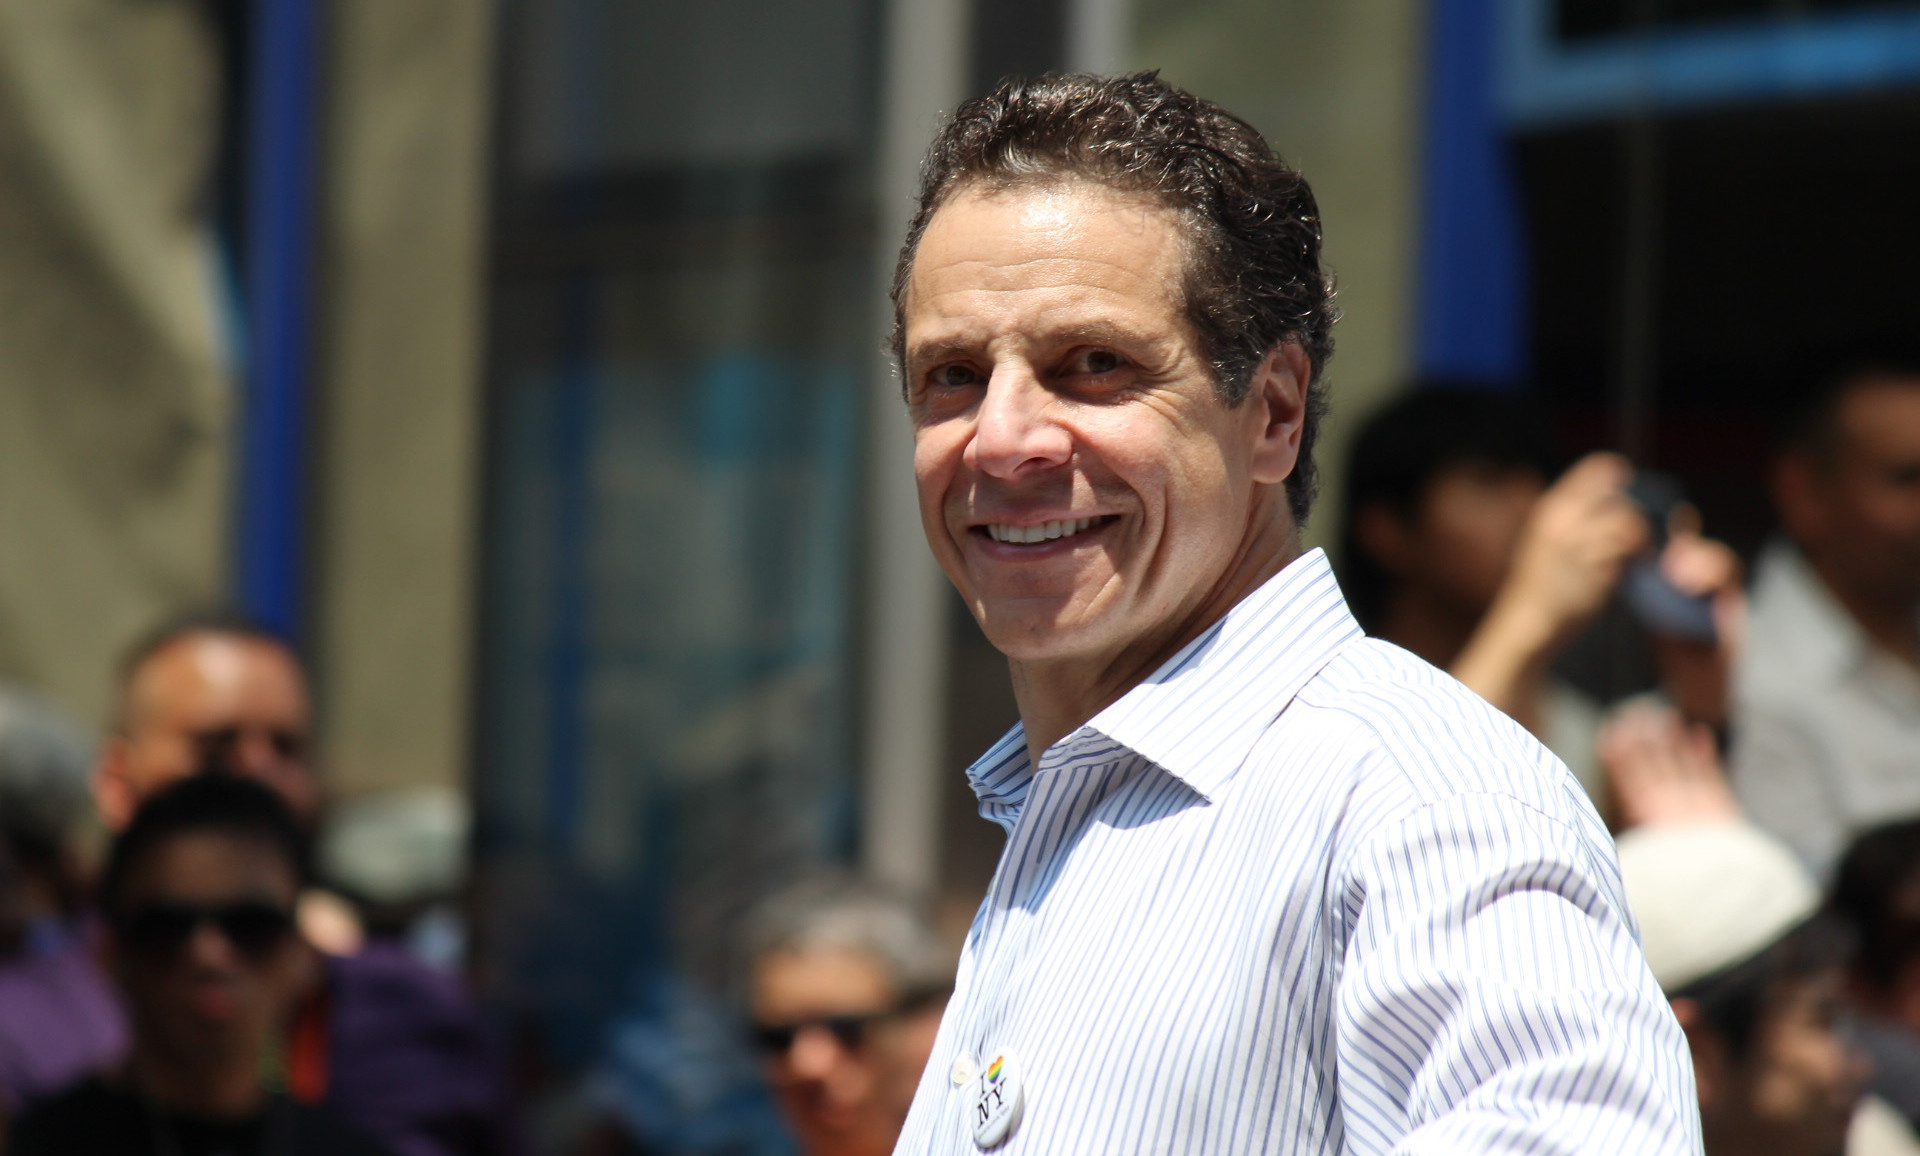 """andrew cuomo smiling in white button-down shirt with """"I love New York"""" pin"""